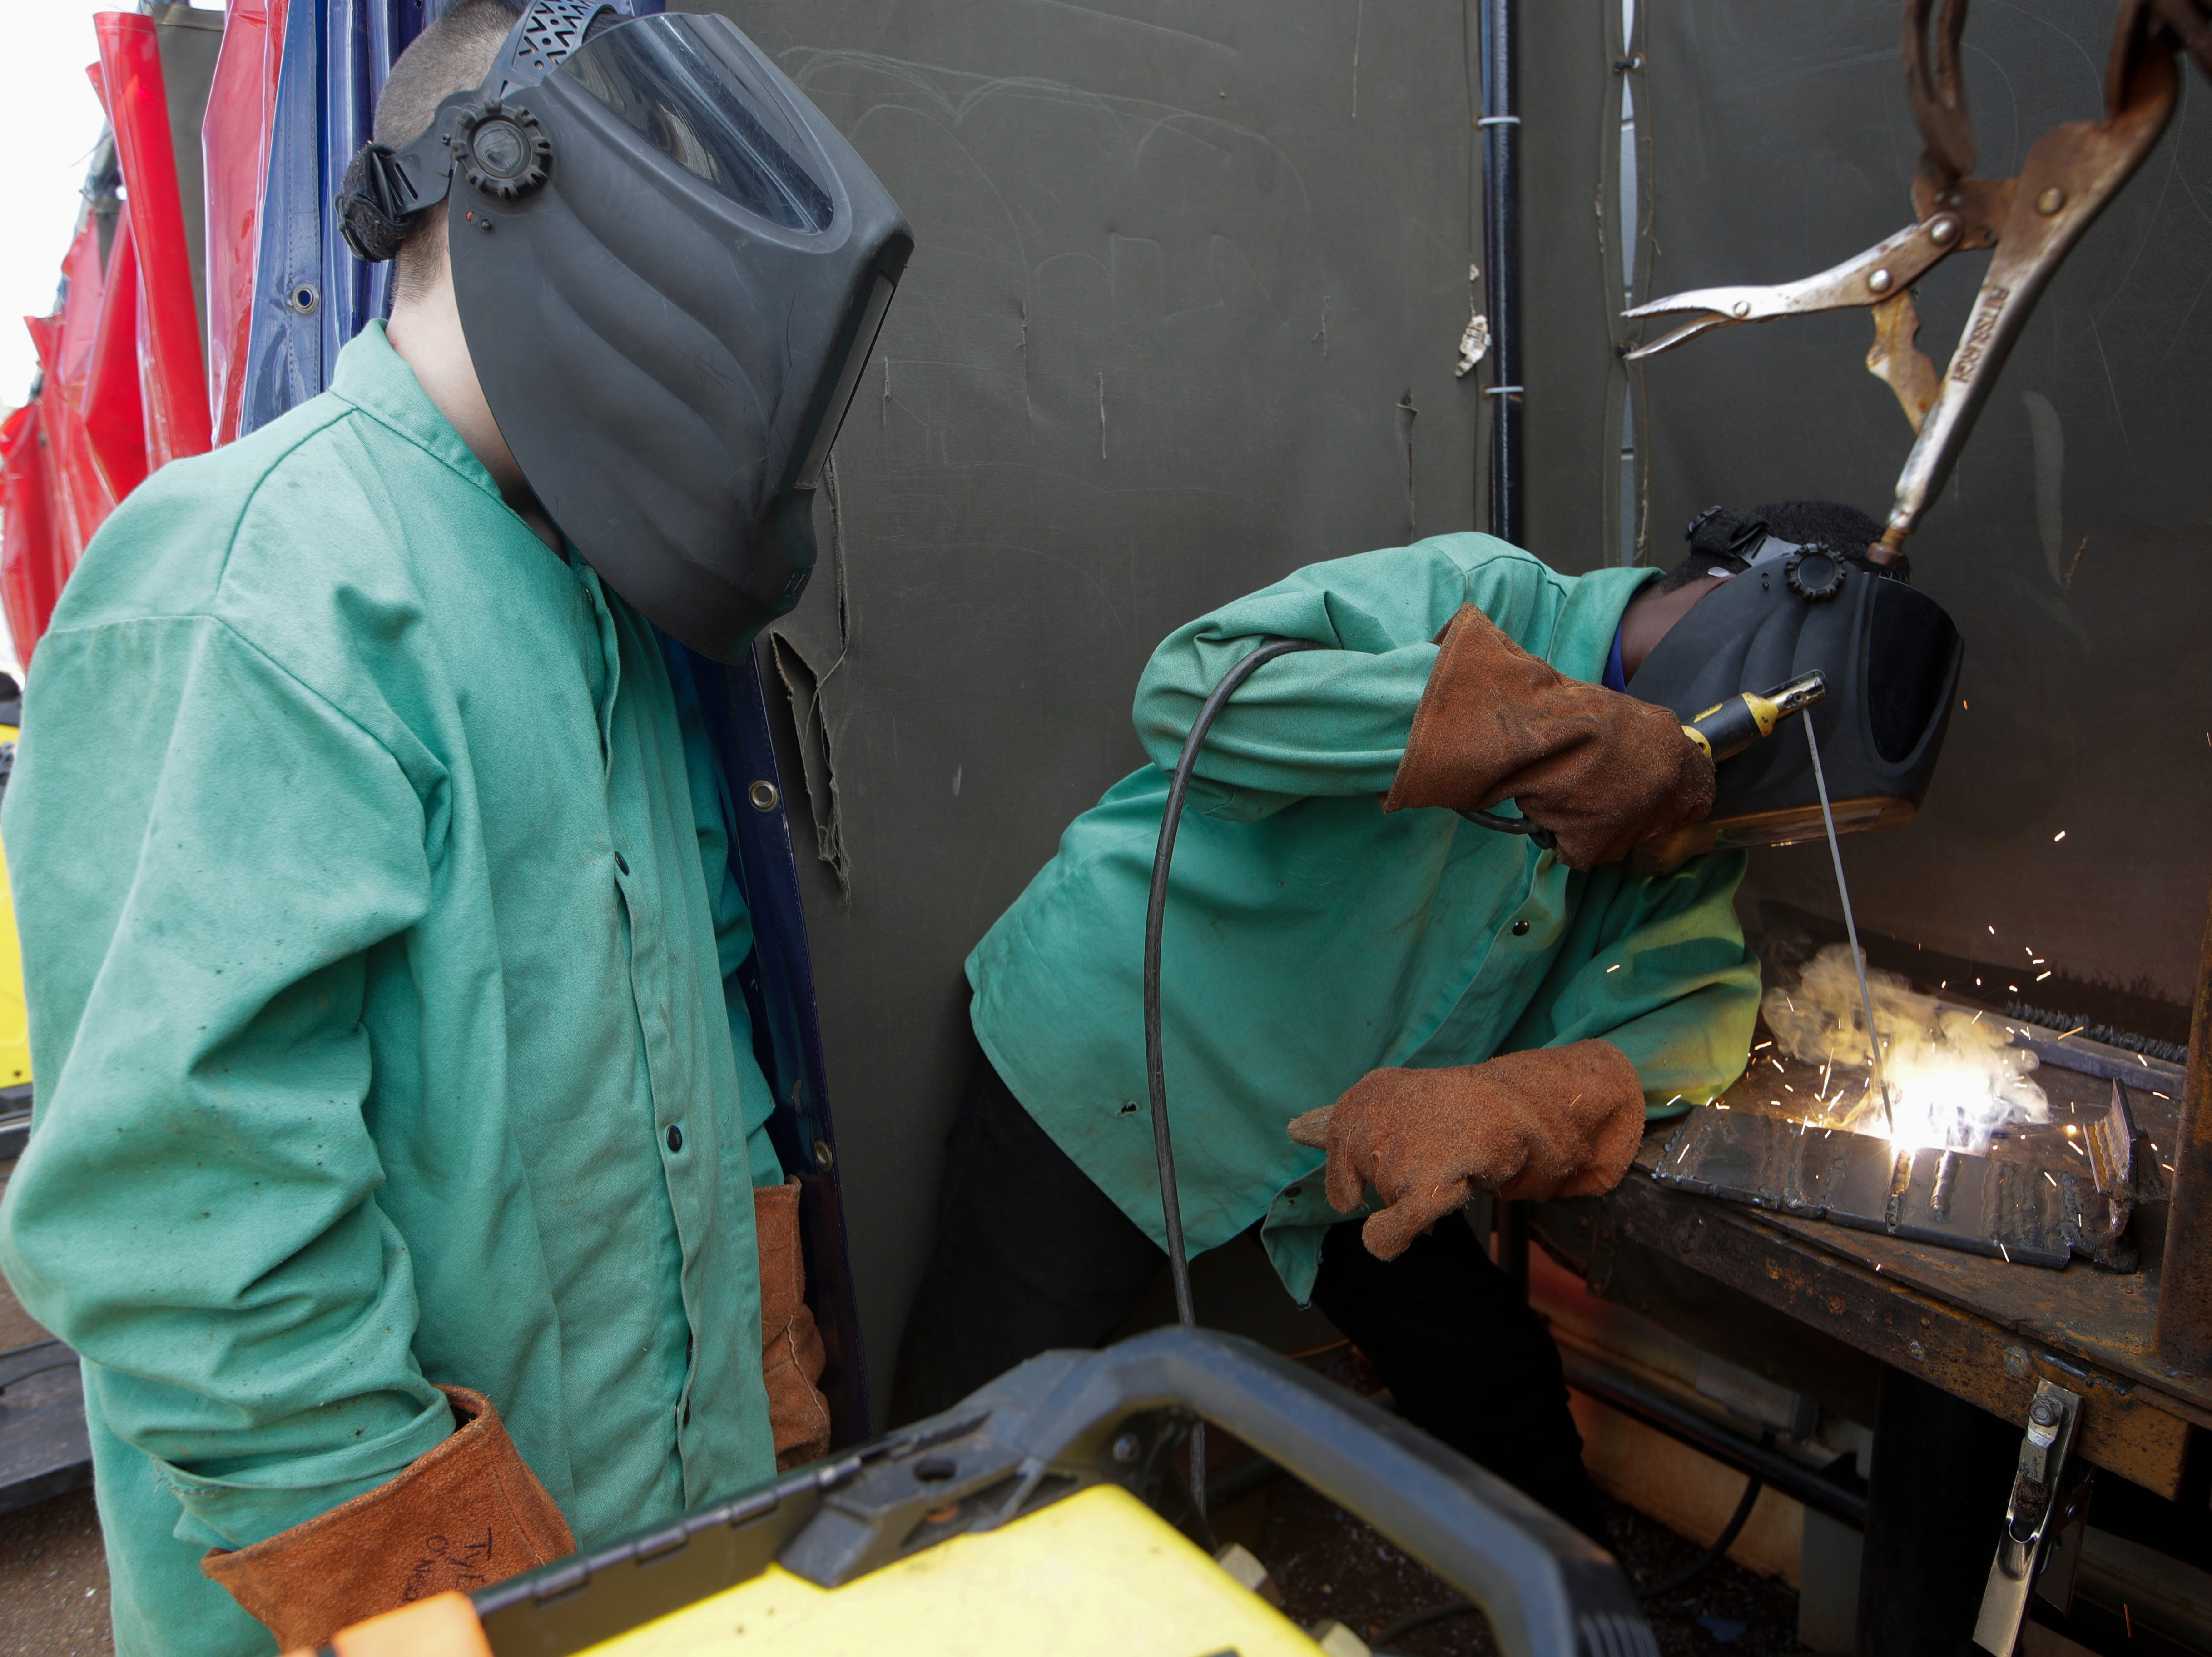 Clarence Lovett, 15, right shows Raa Middle School student Devon Gartner, 14, a flat groove weld during a welding class Tuesday, Feb. 5, 2019. Middle school students spent the class period shadowing welding students to see if they were interested in taking the course when they enter high school.